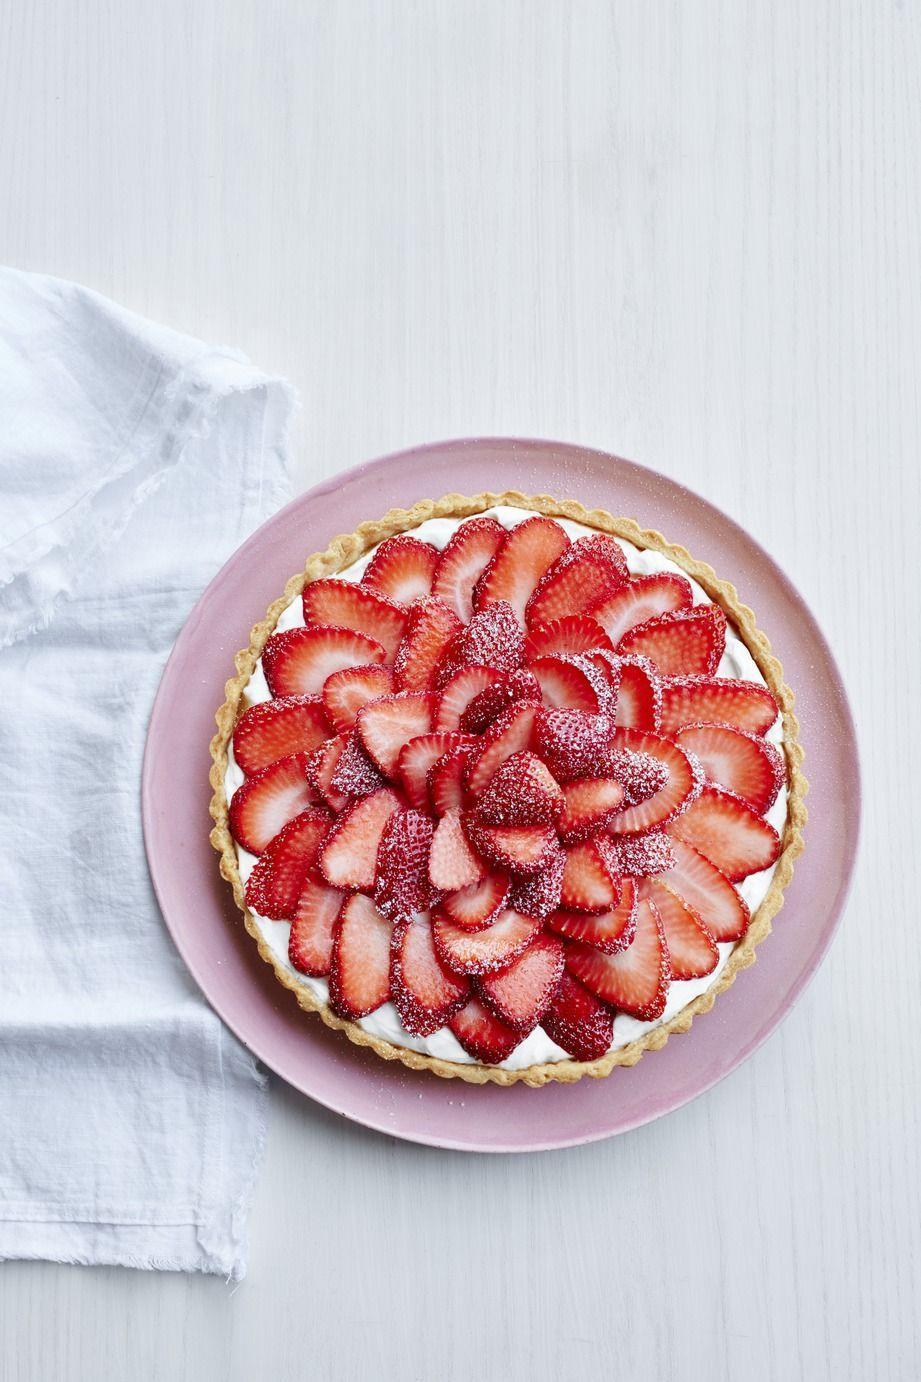 """<p>This showstopping tart is as tasty as it is beautiful (and it's definitely worth the time).</p><p><em><a href=""""https://www.womansday.com/food-recipes/recipes/a50561/strawberry-tart-recipe-wdy0615/"""" rel=""""nofollow noopener"""" target=""""_blank"""" data-ylk=""""slk:Get the recipe for Strawberry Tart."""" class=""""link rapid-noclick-resp"""">Get the recipe for Strawberry Tart.</a></em></p>"""